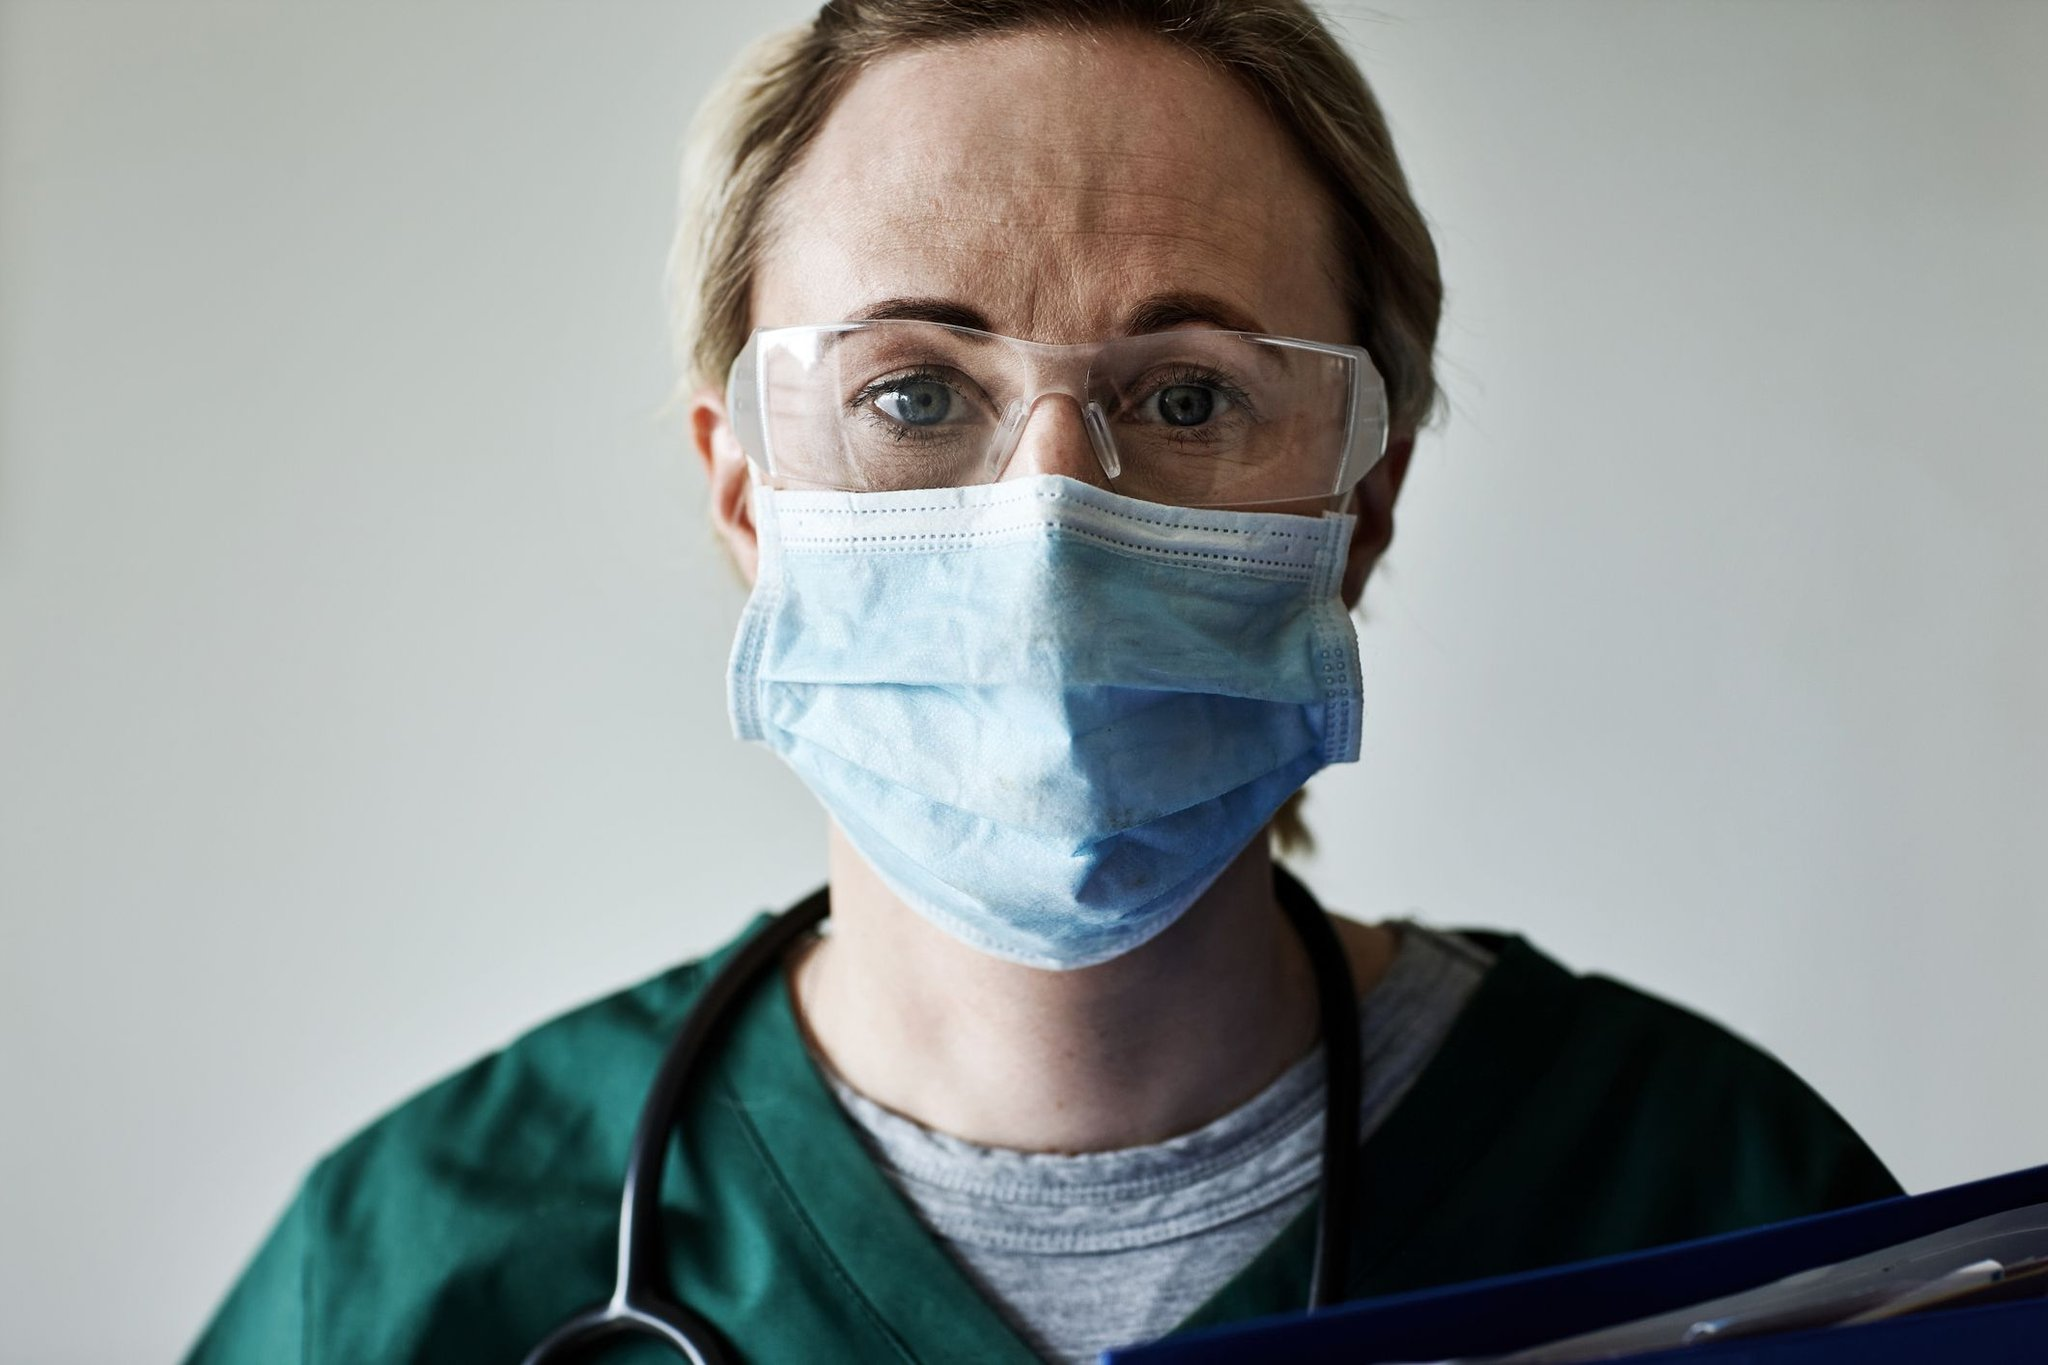 Nurses are being offered a 1% pay rise - here's how much they are currently paid